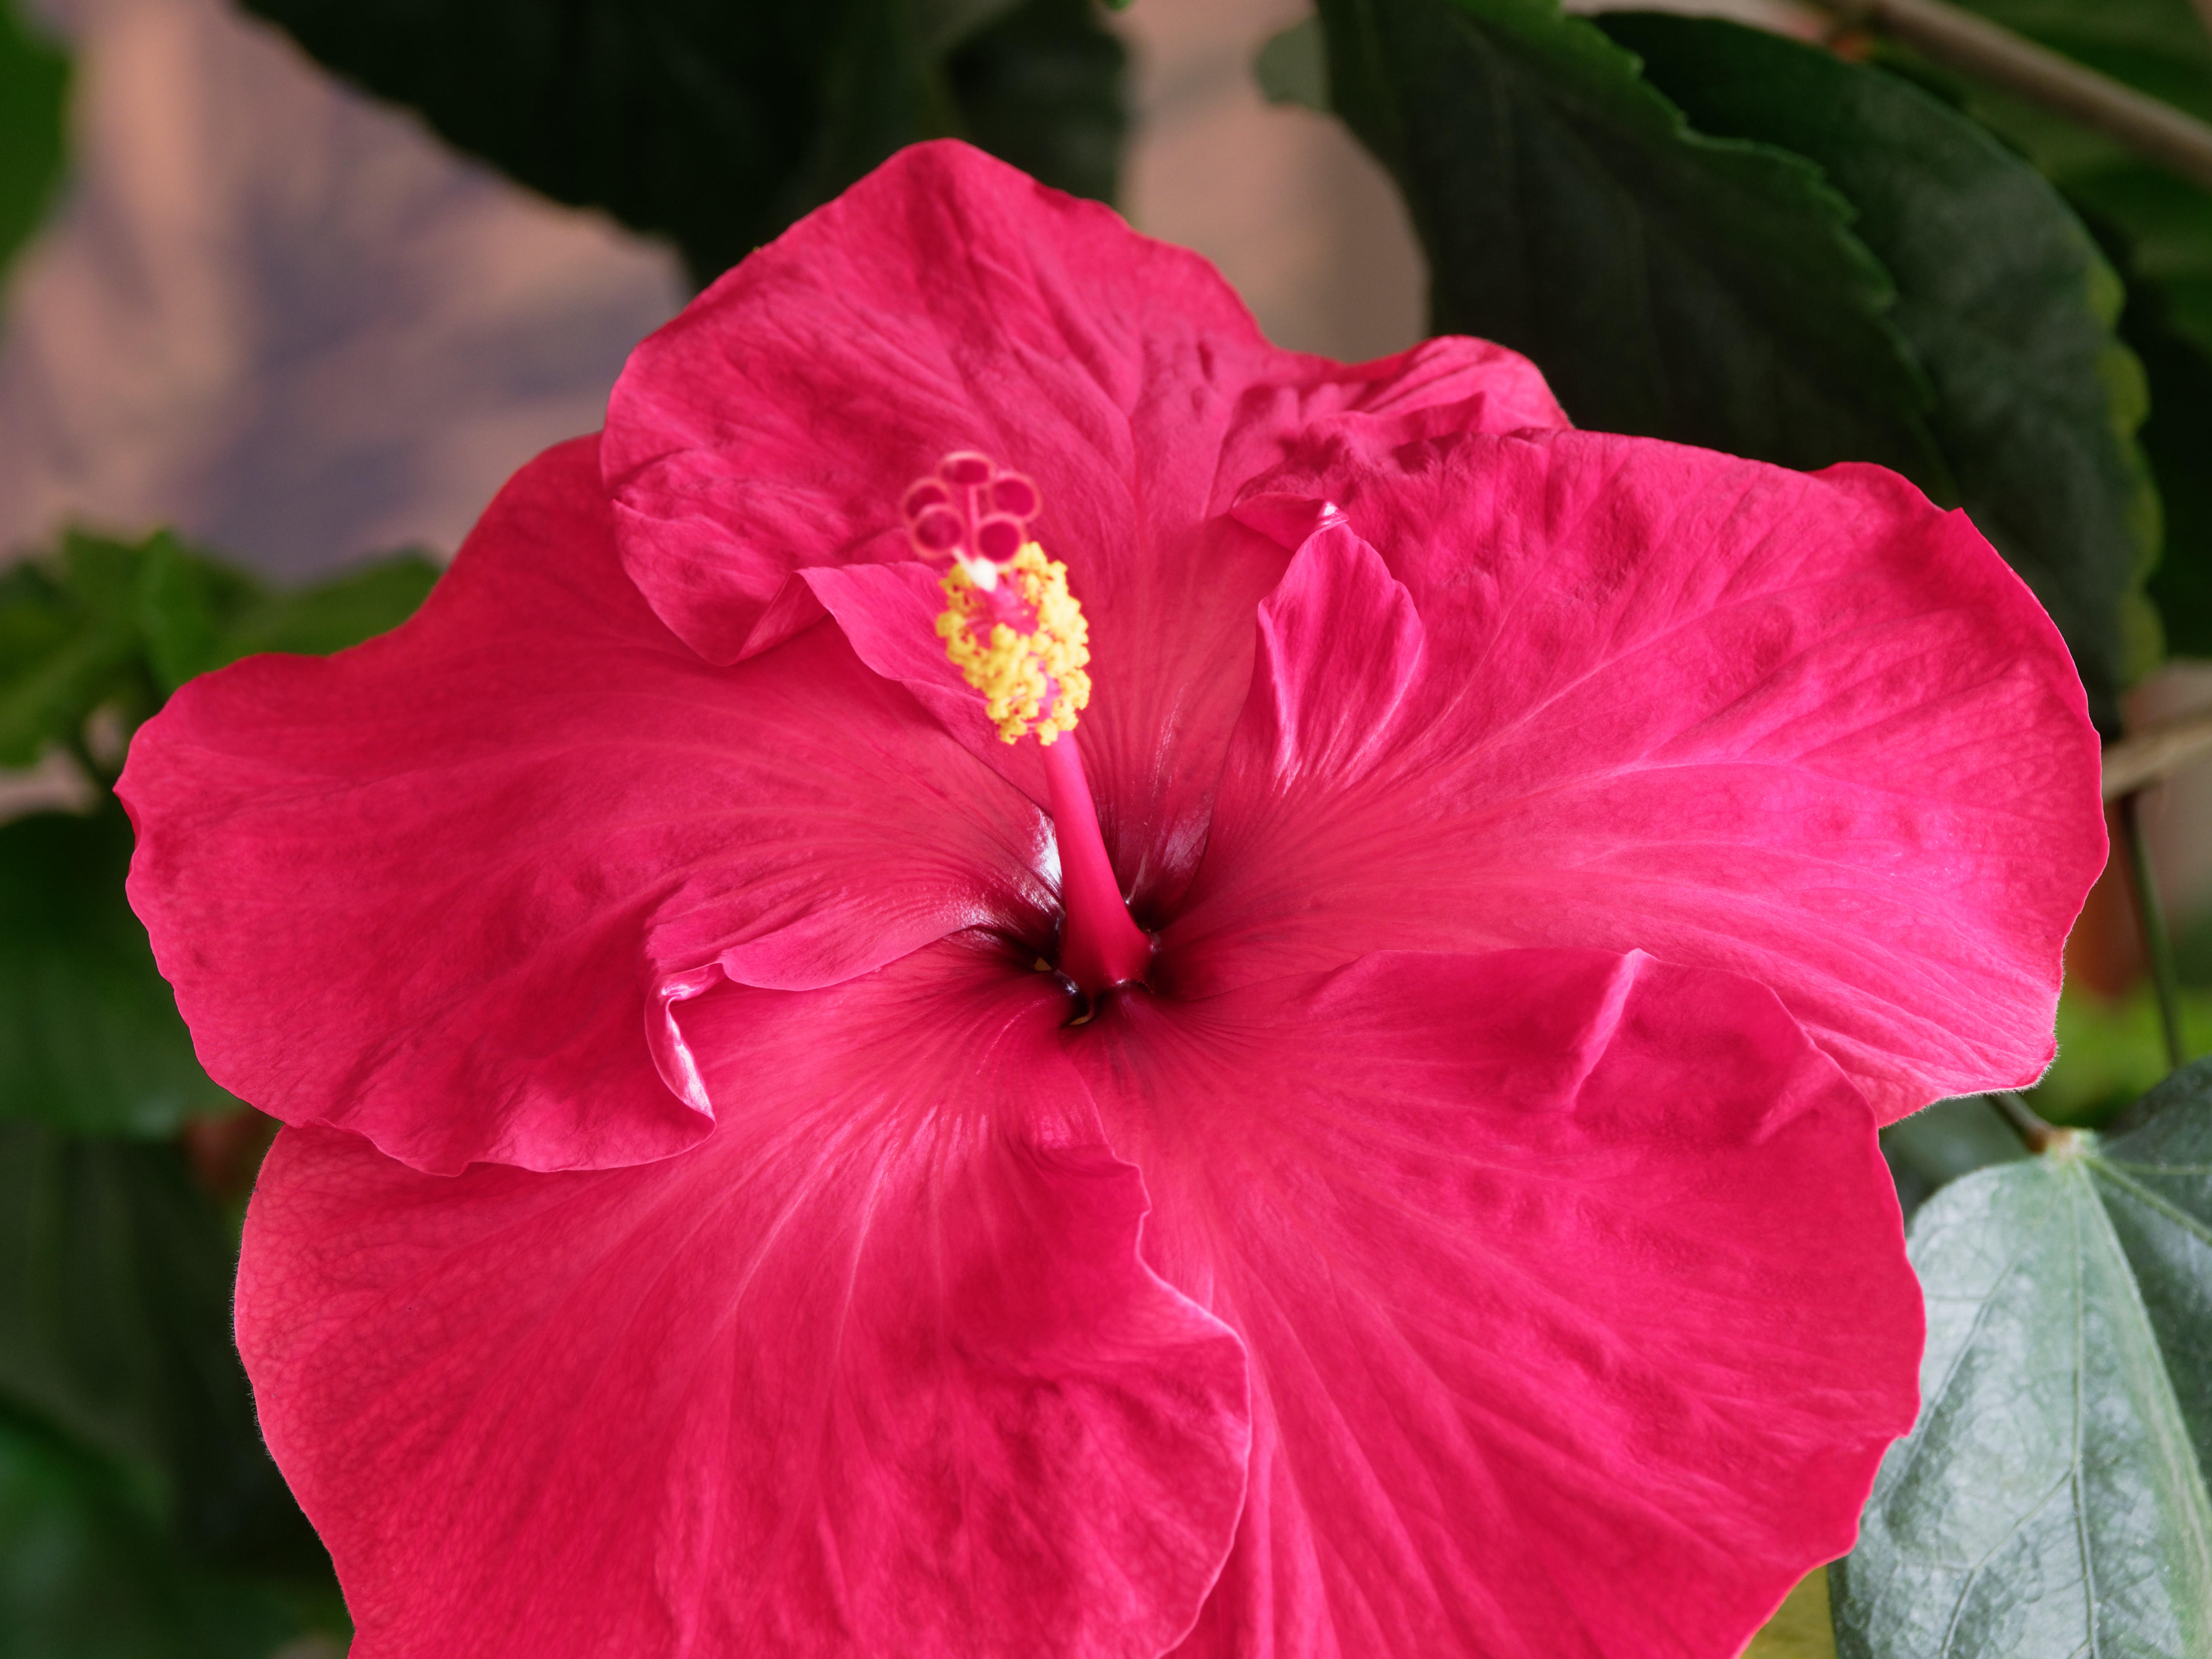 This should be Hibiscus-51.jpeg.  Is it missing?